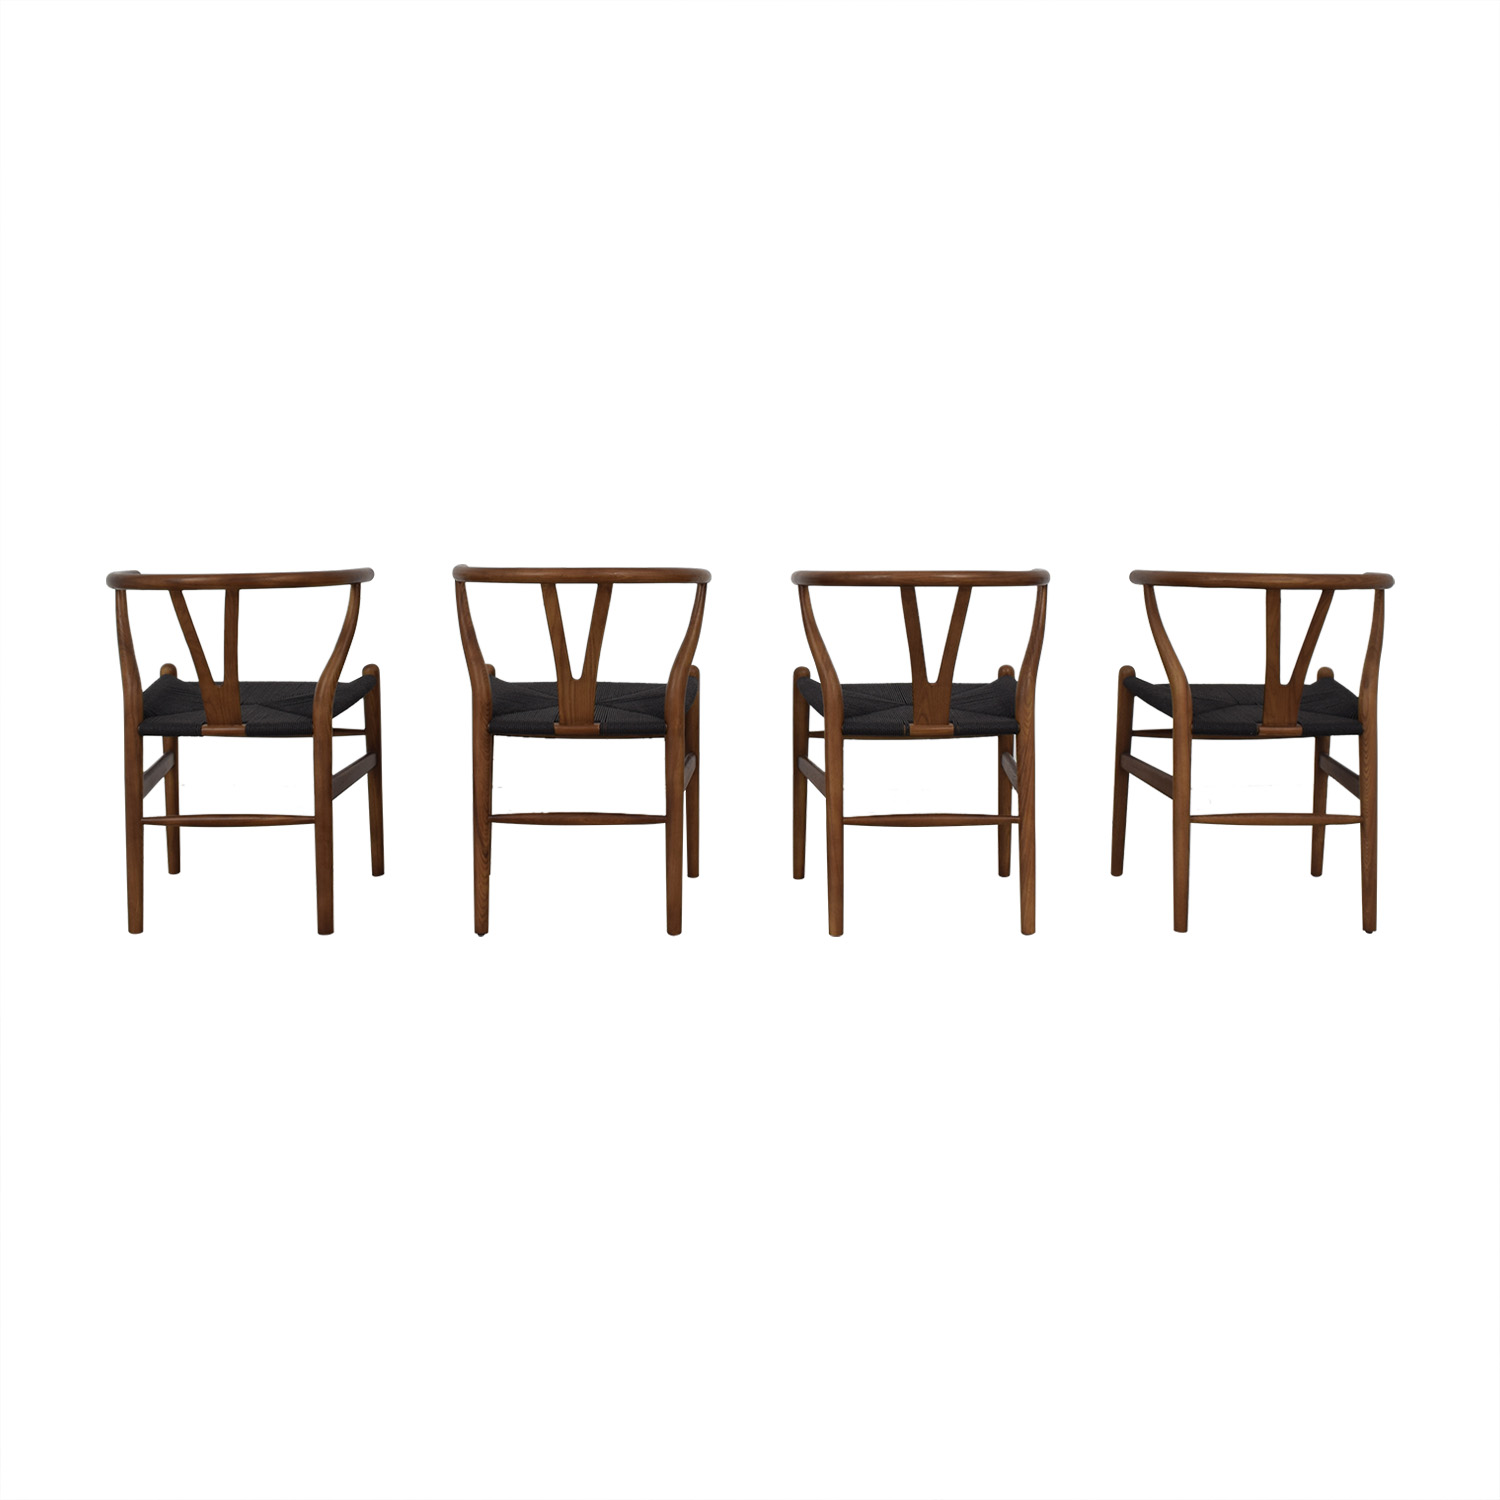 Rove Concepts Rove Concepts Wishbone Chairs second hand